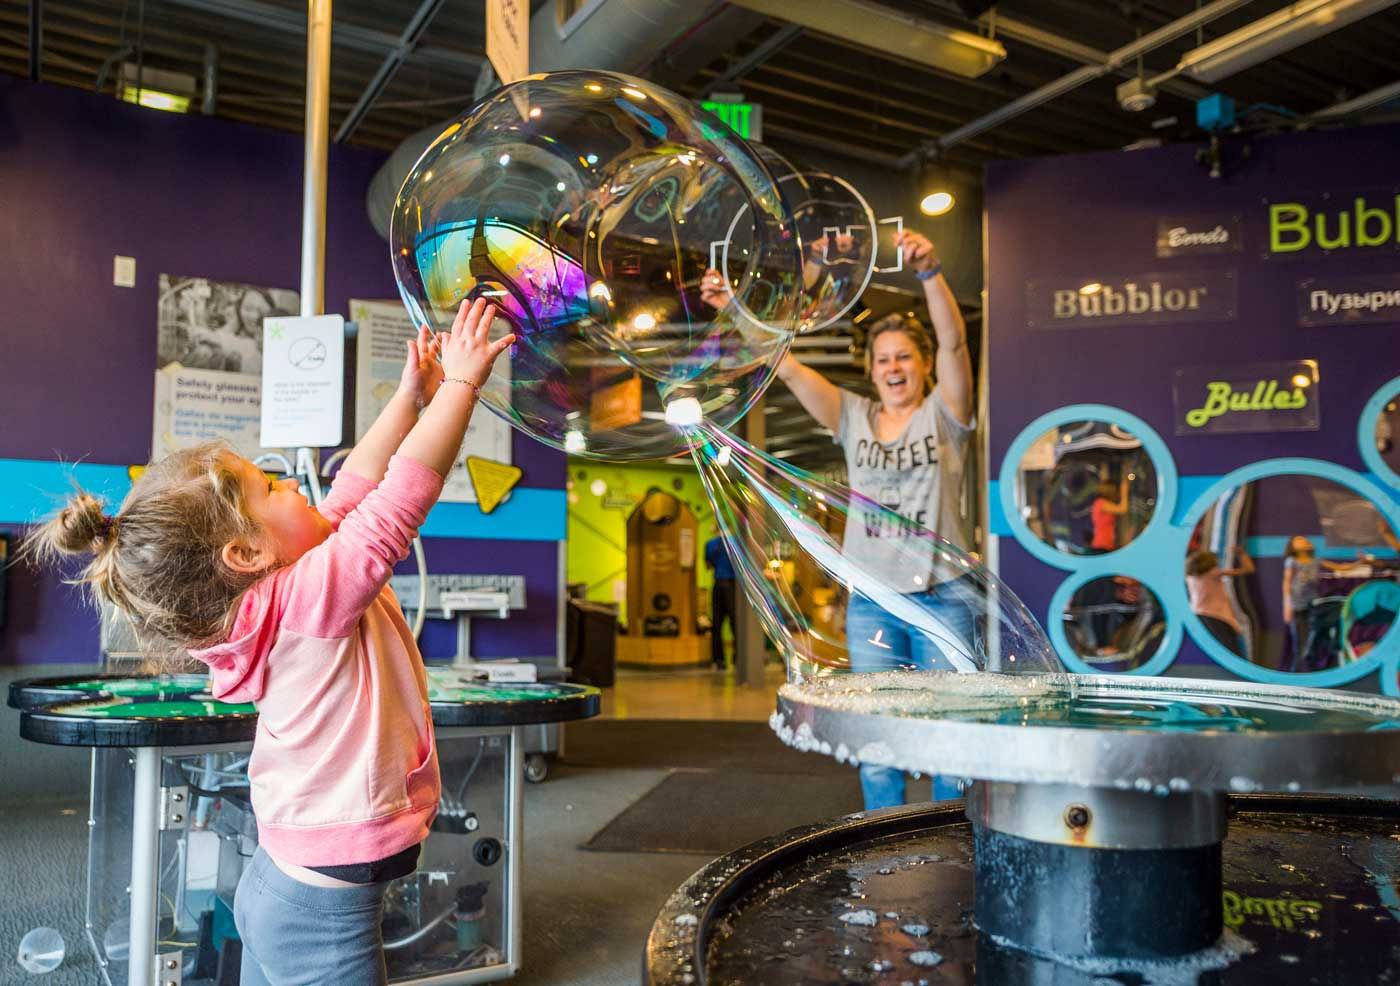 Woman and child playing at the bubble exhibition at the Children's Museum of Denver